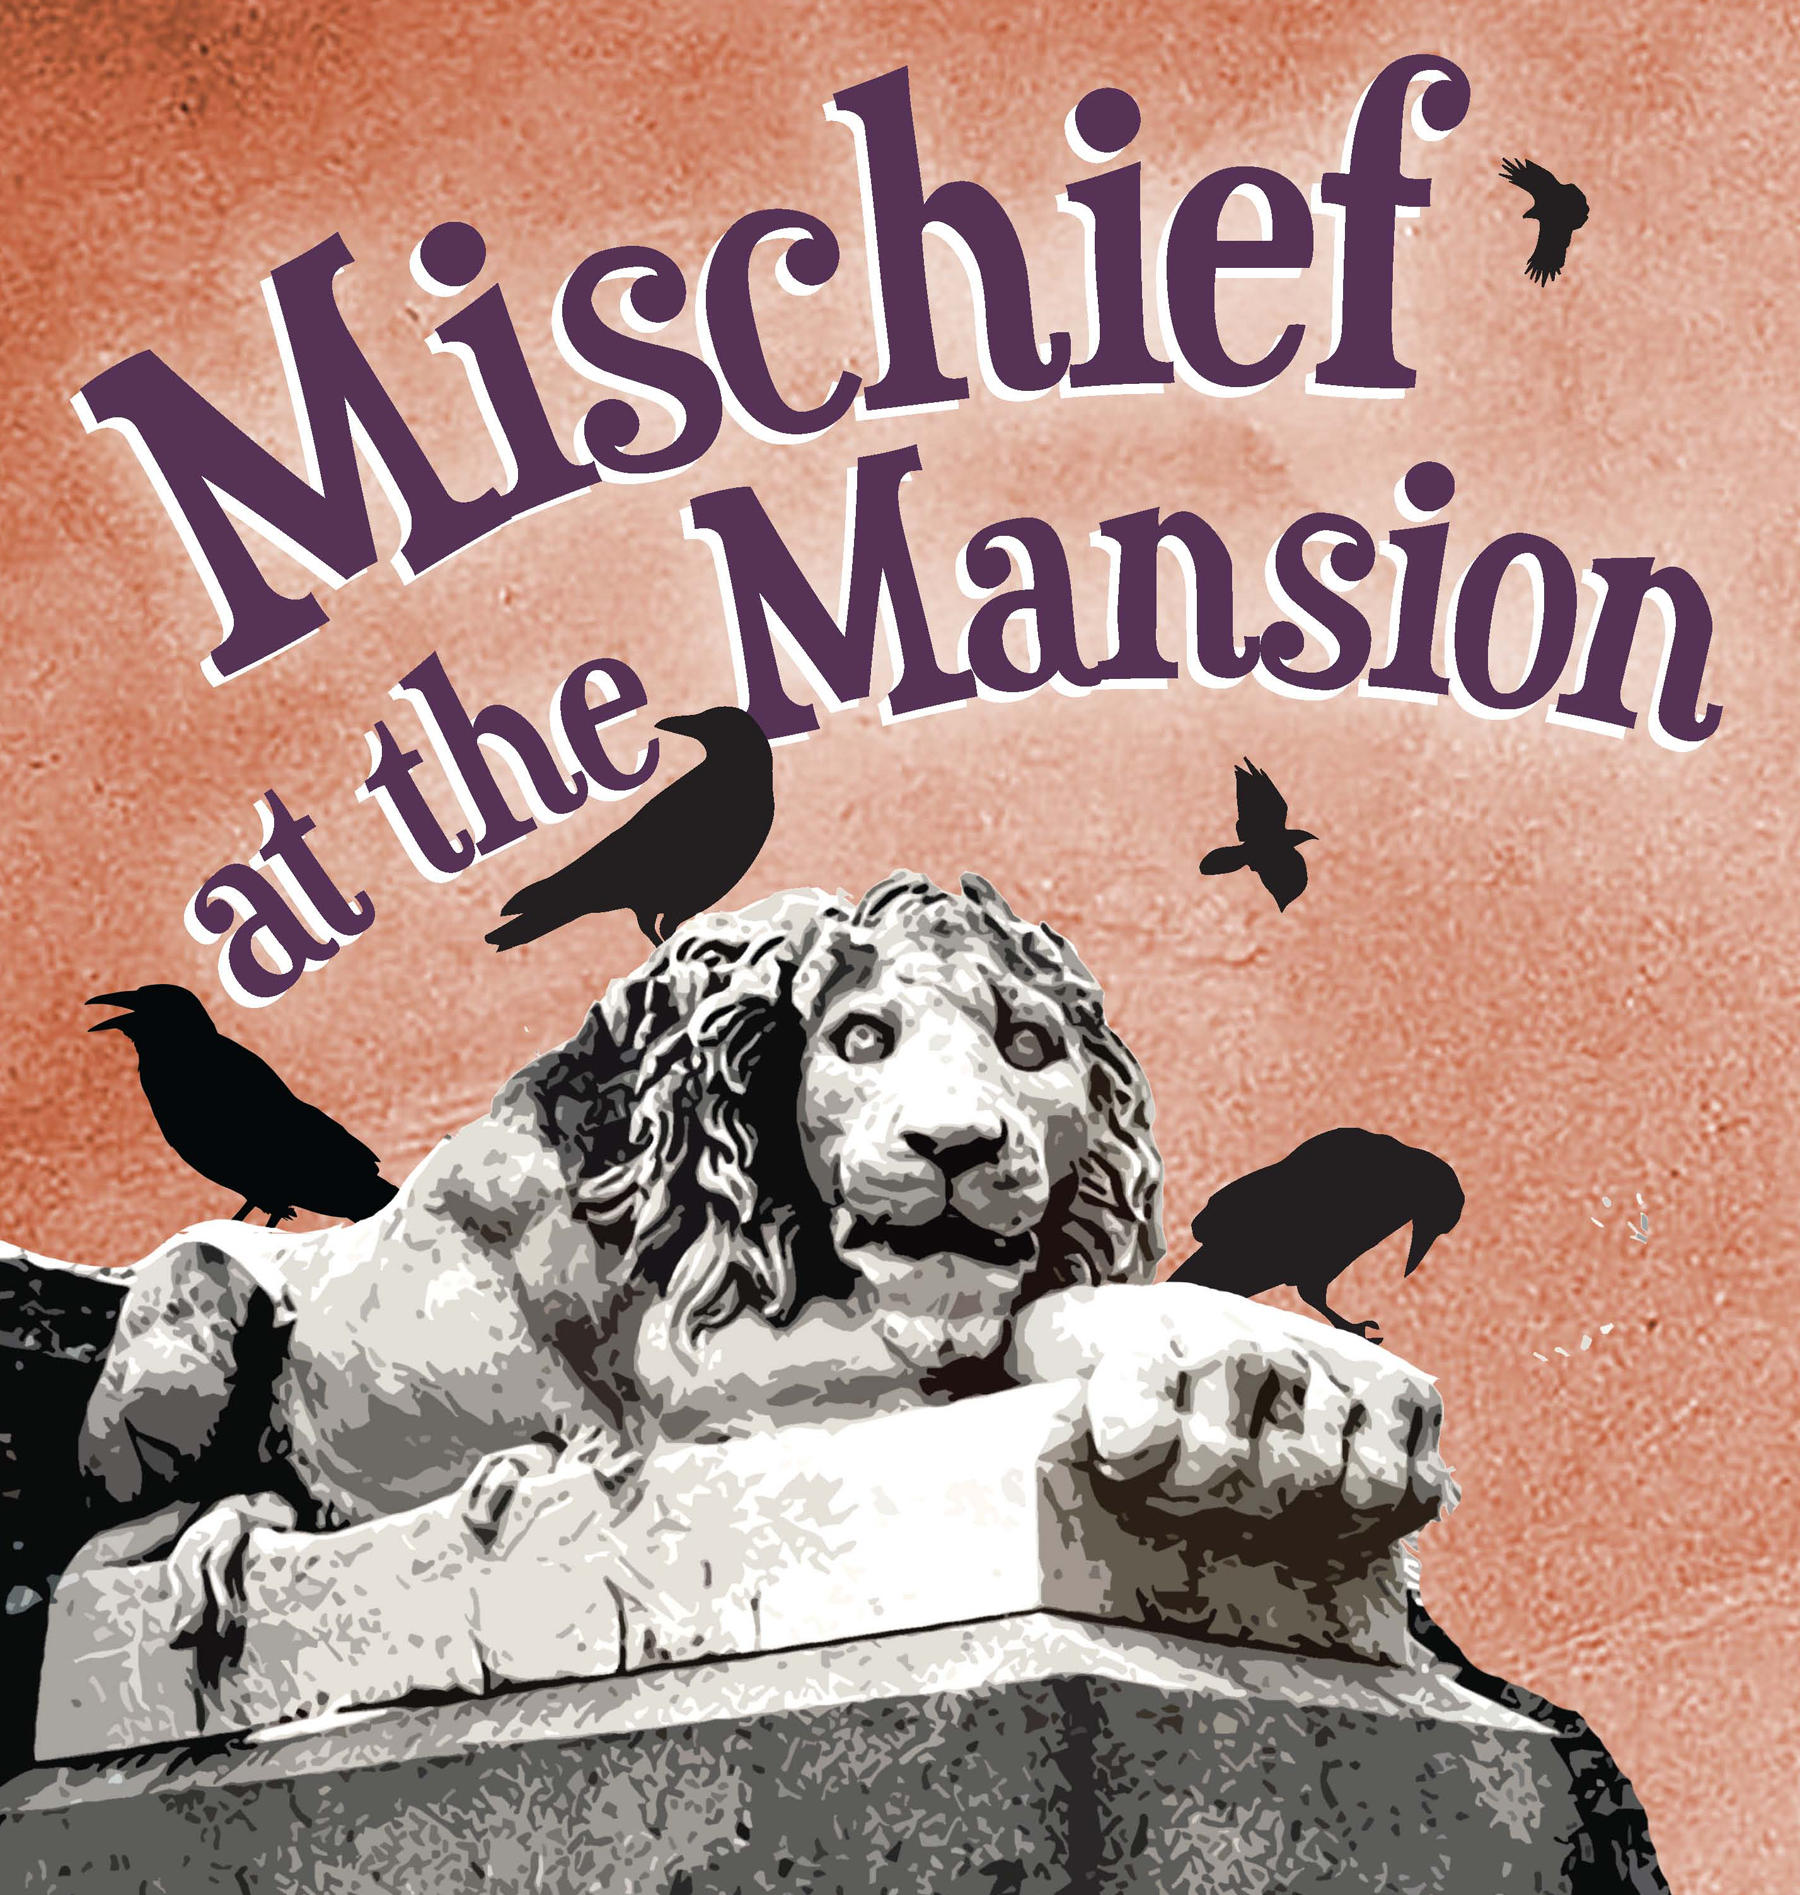 Mischief At The Mansion: A Halloween Gala To Benefit Wistariahurst